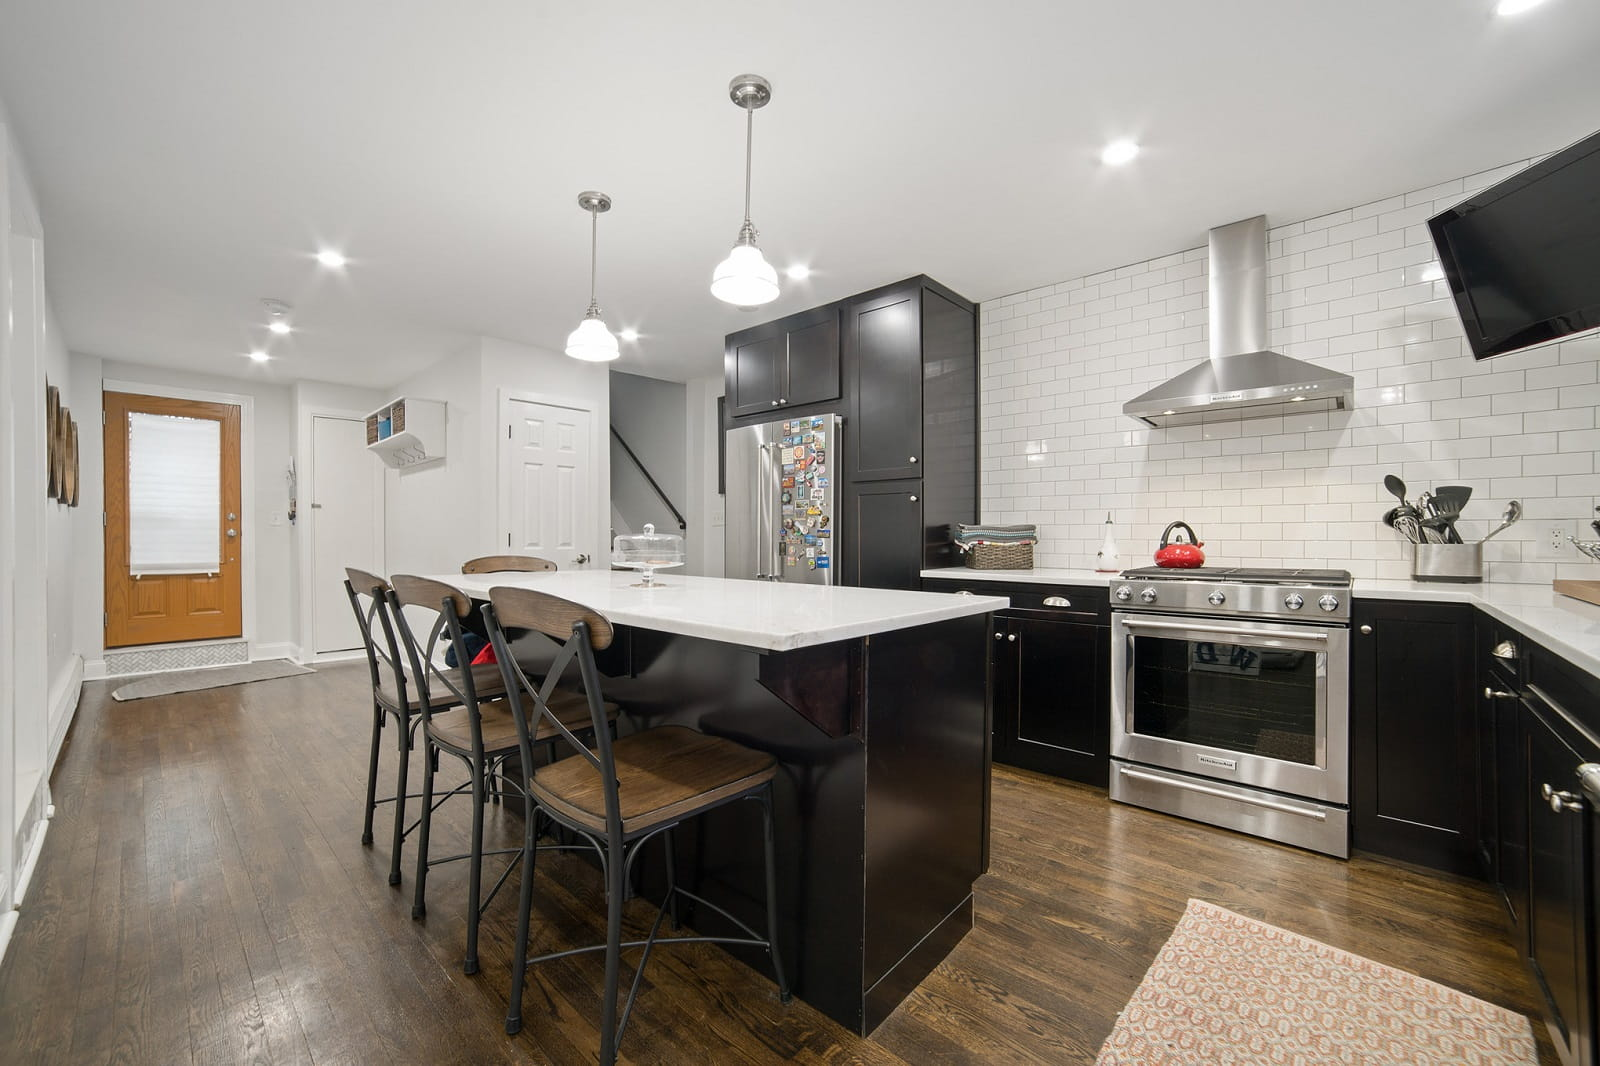 Real Estate Photography in Bronx - New York - USA - Kitchen View